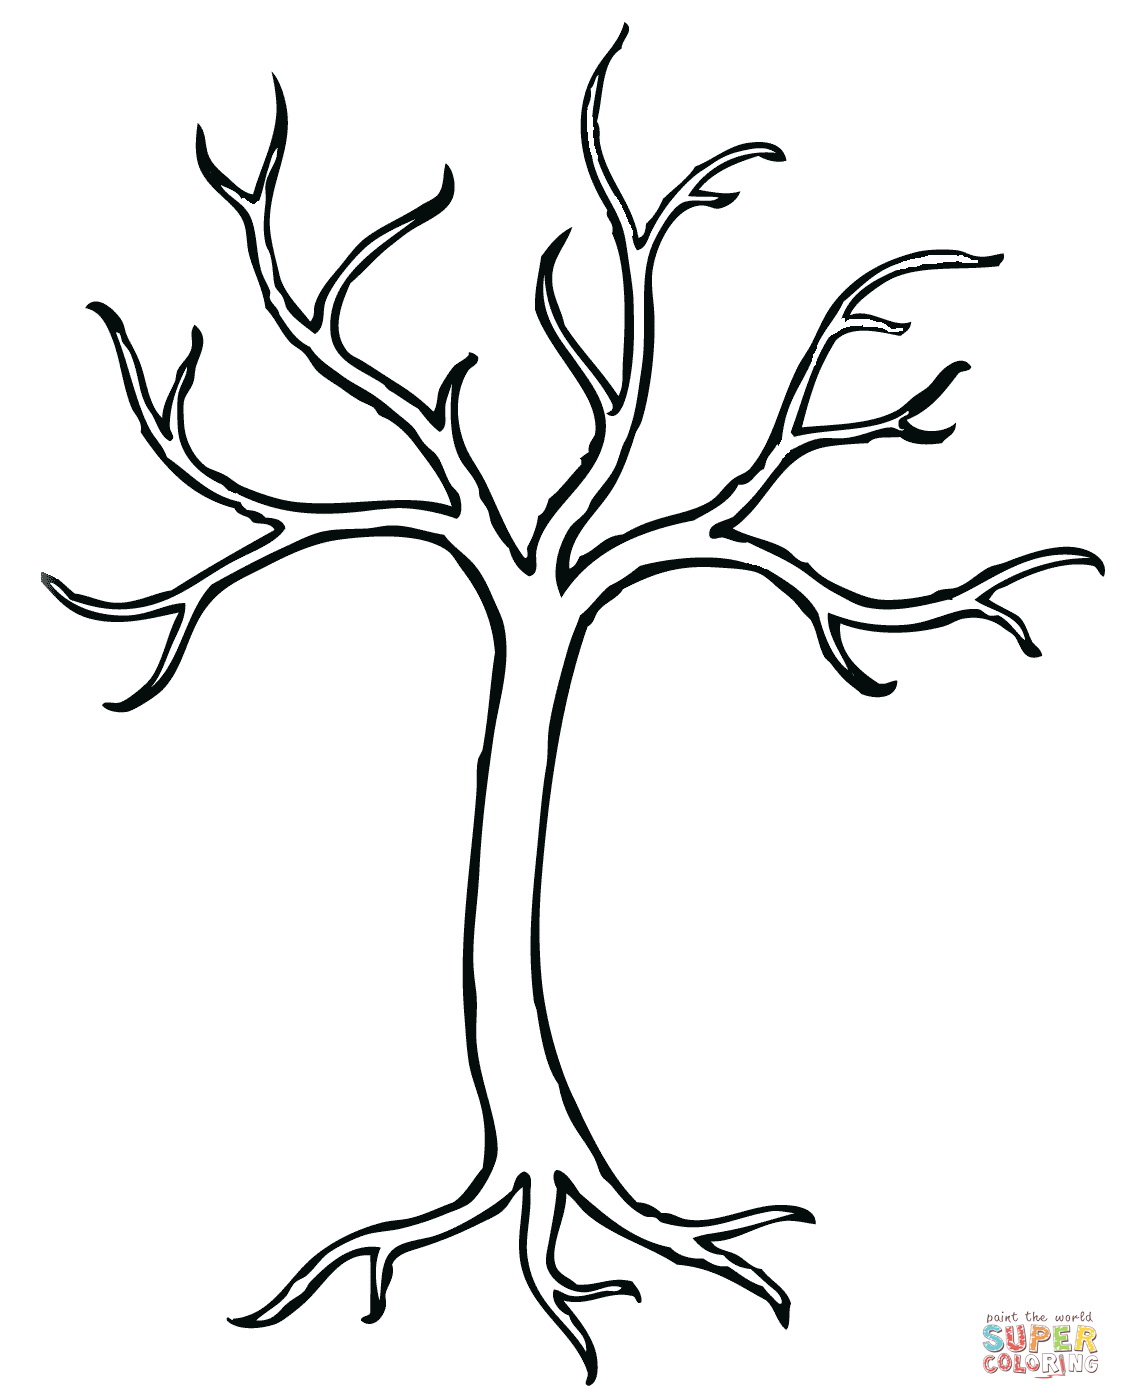 Bare clipart cartoon. Tree coloring page from